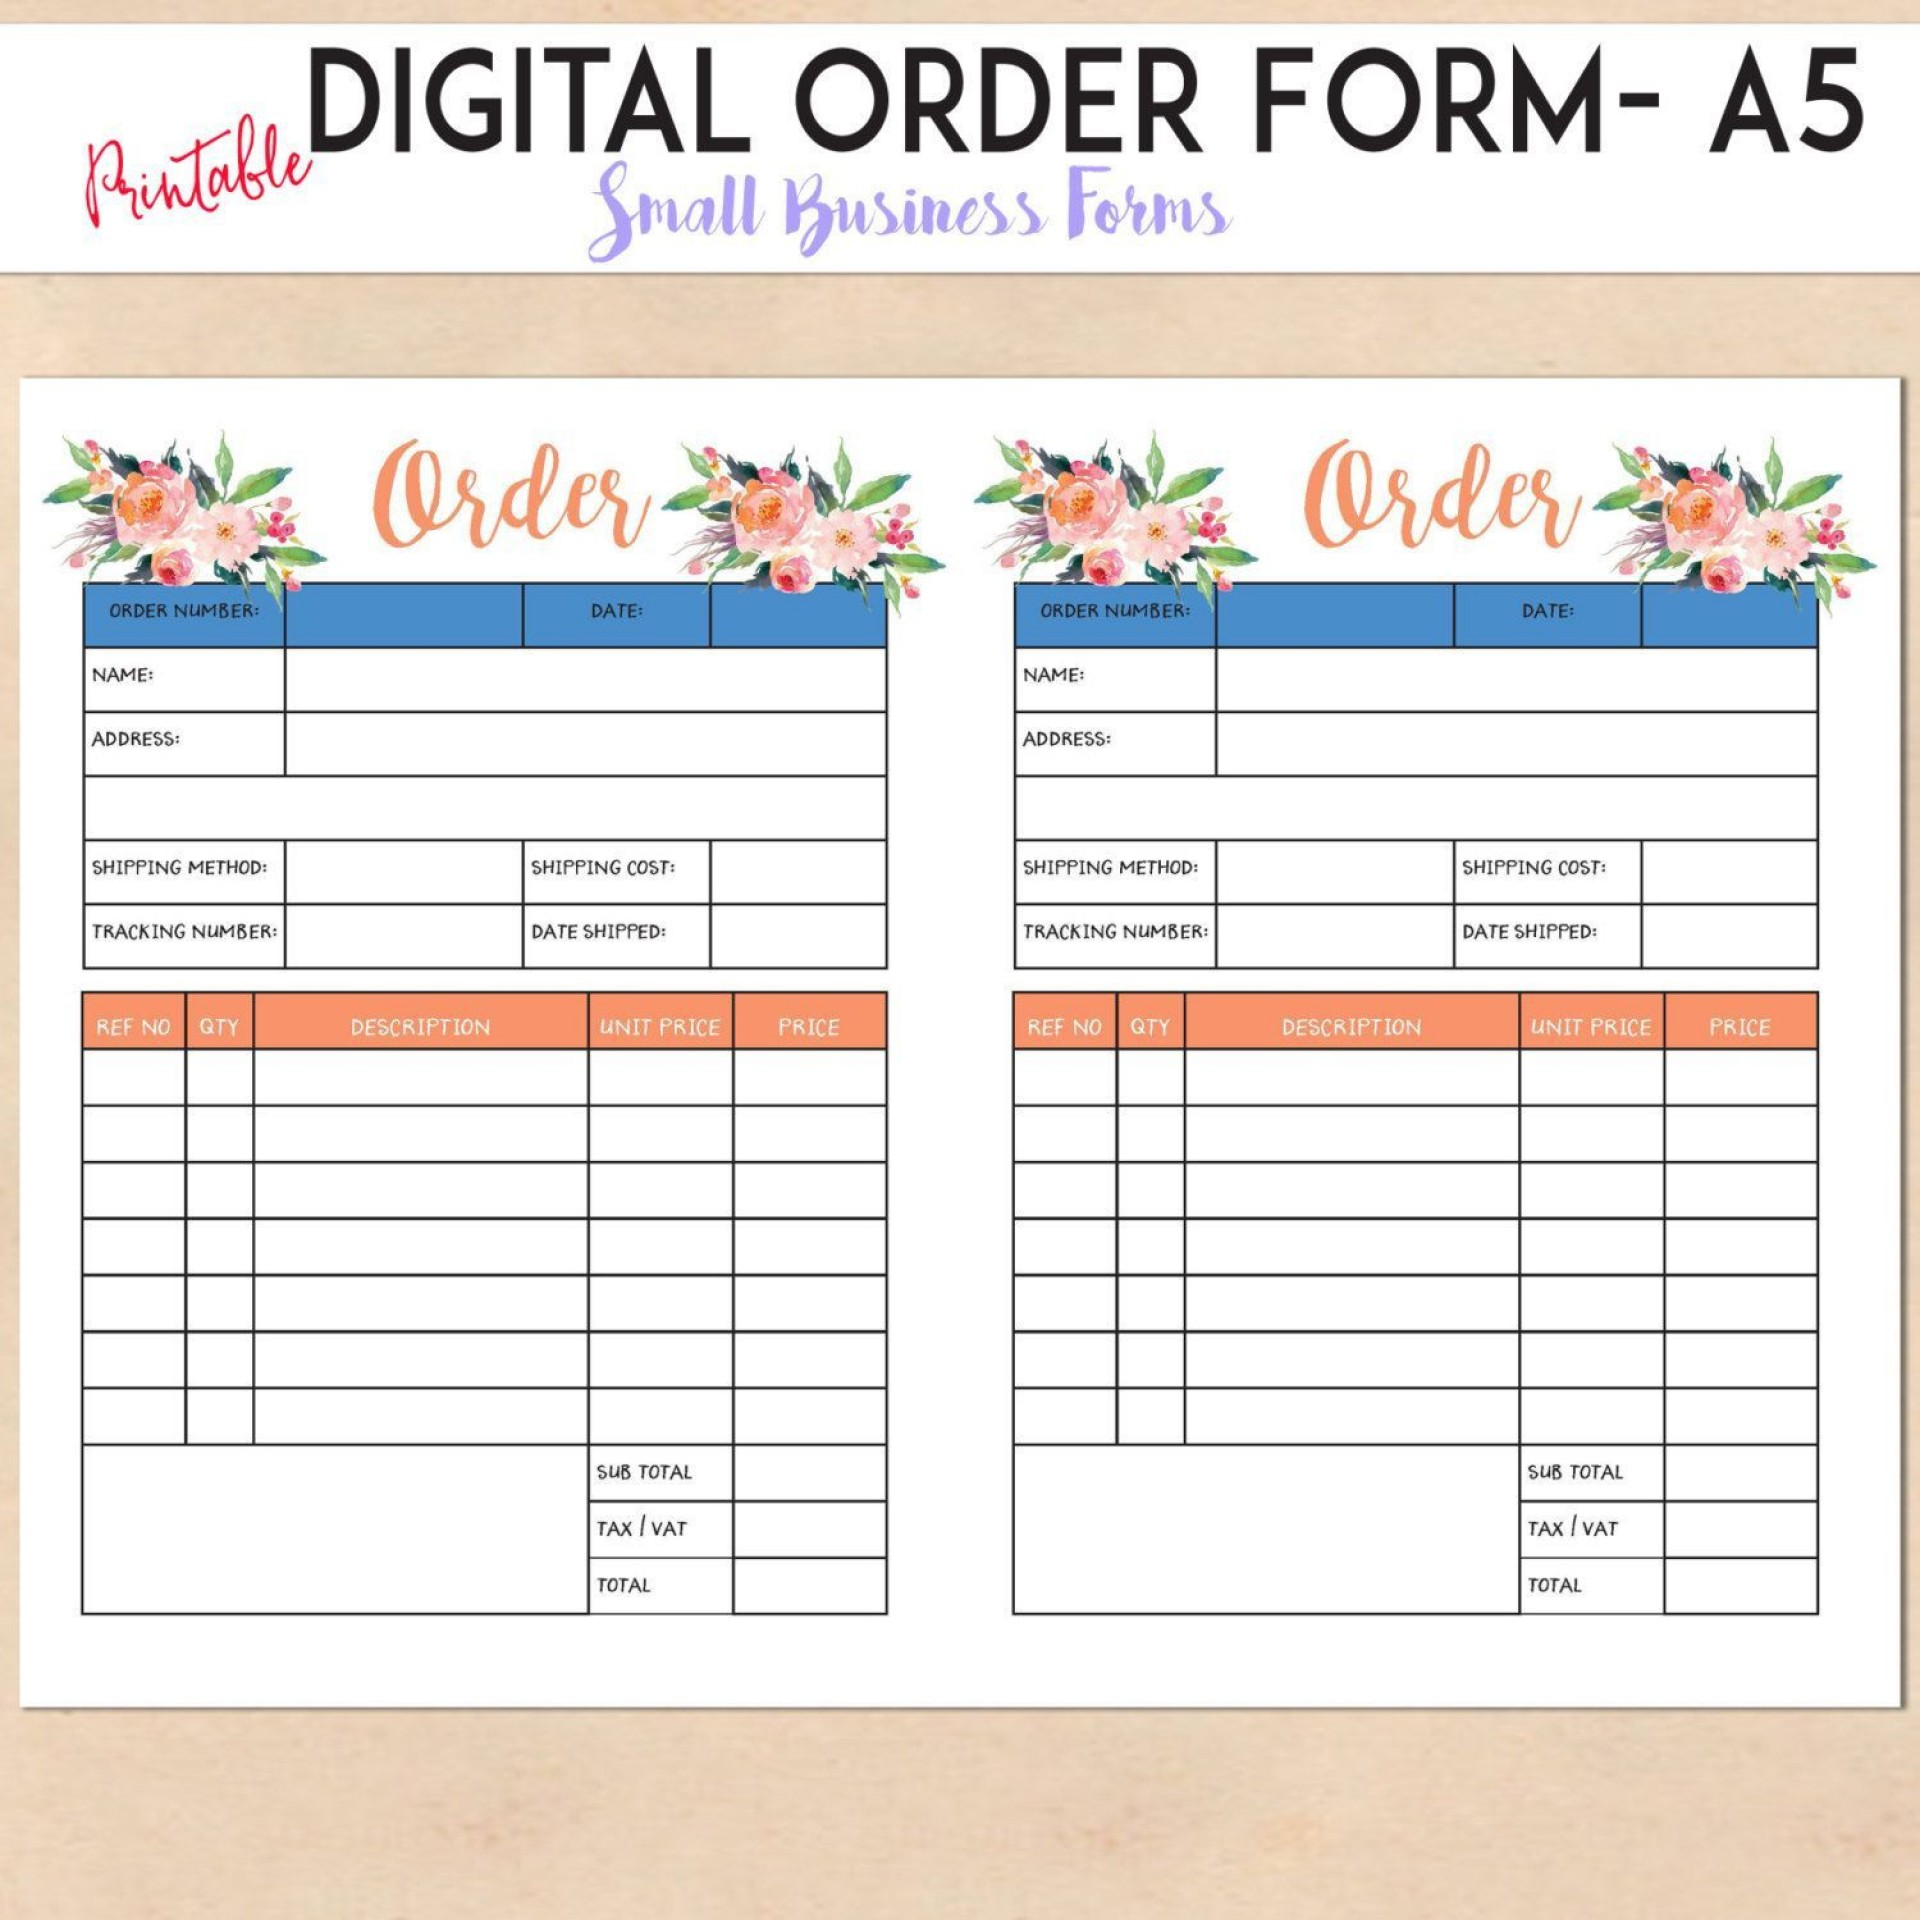 004 Surprising Custom Order Form Template Free Concept  Tumbler Editable1920